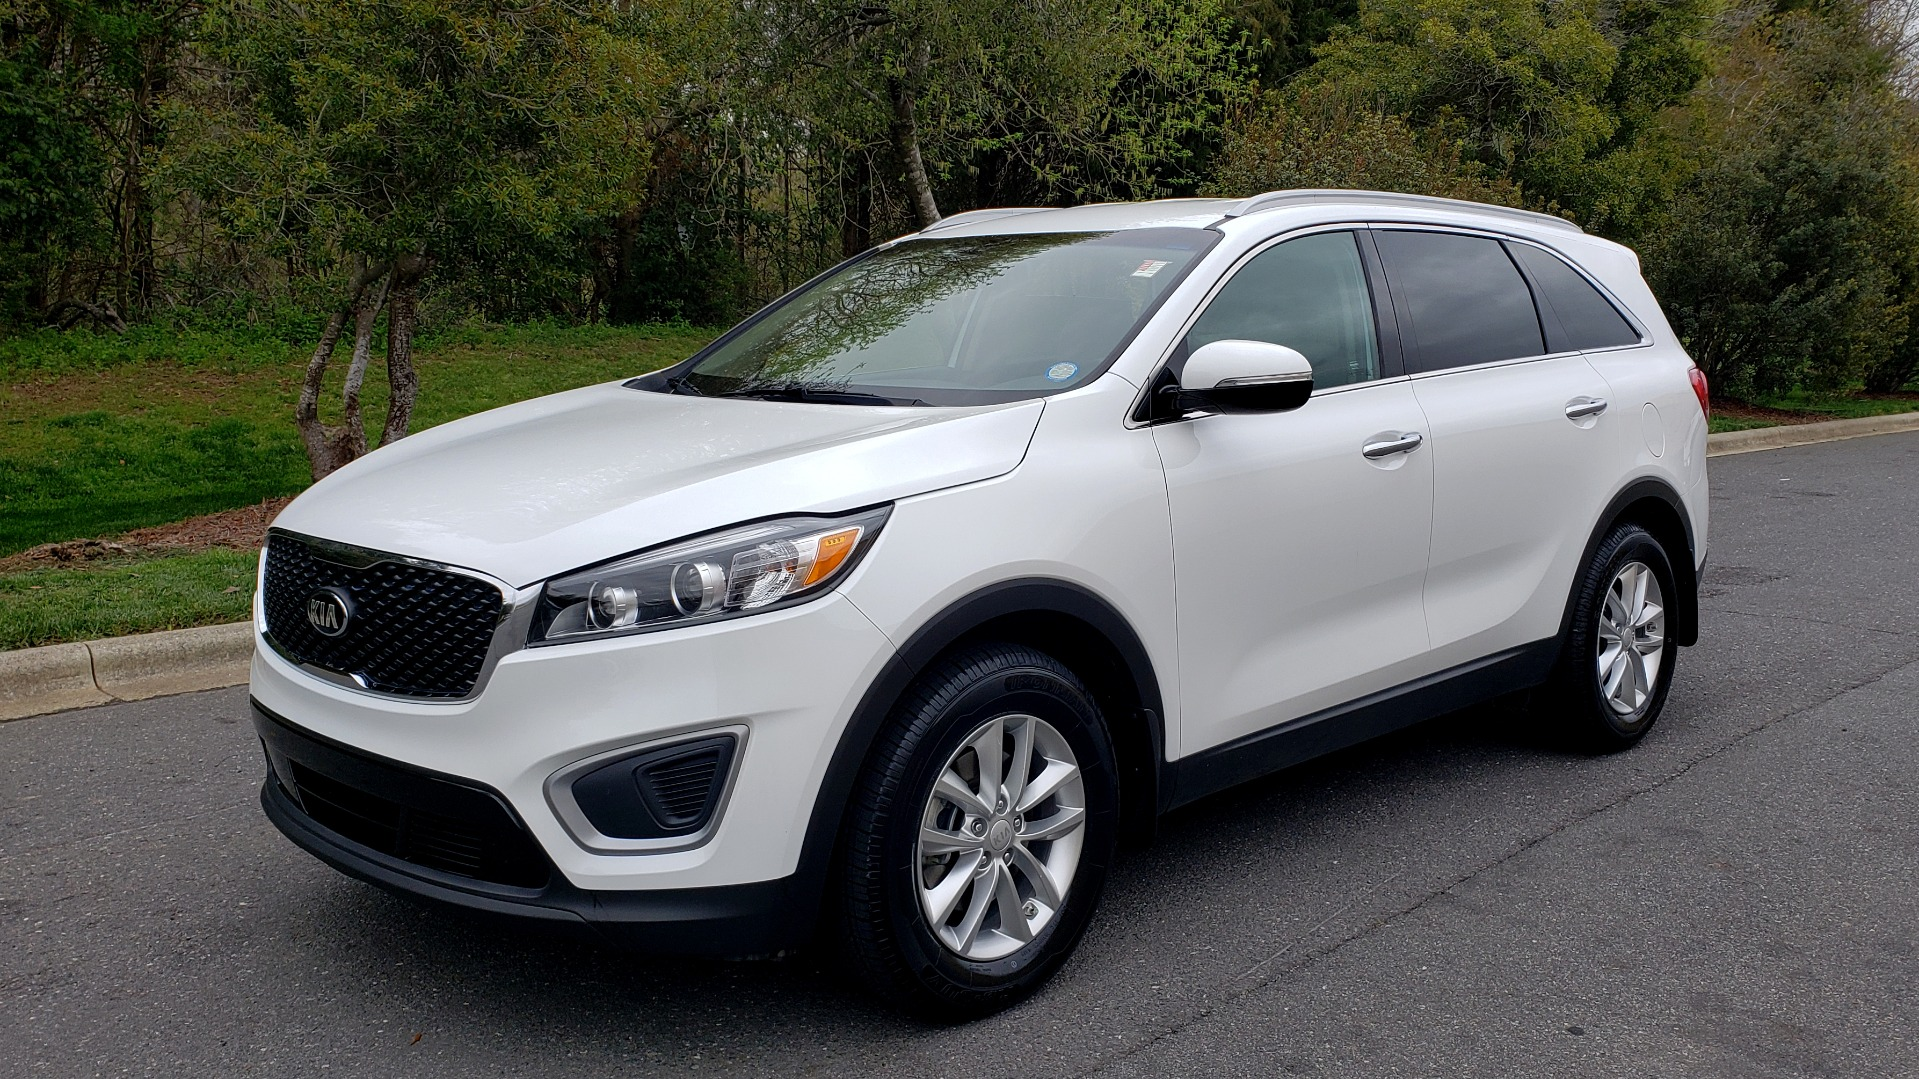 Used 2017 Kia SORENTO LX CONV PKG / FWD / ADVANCED TECH / 3-ROW for sale Sold at Formula Imports in Charlotte NC 28227 1